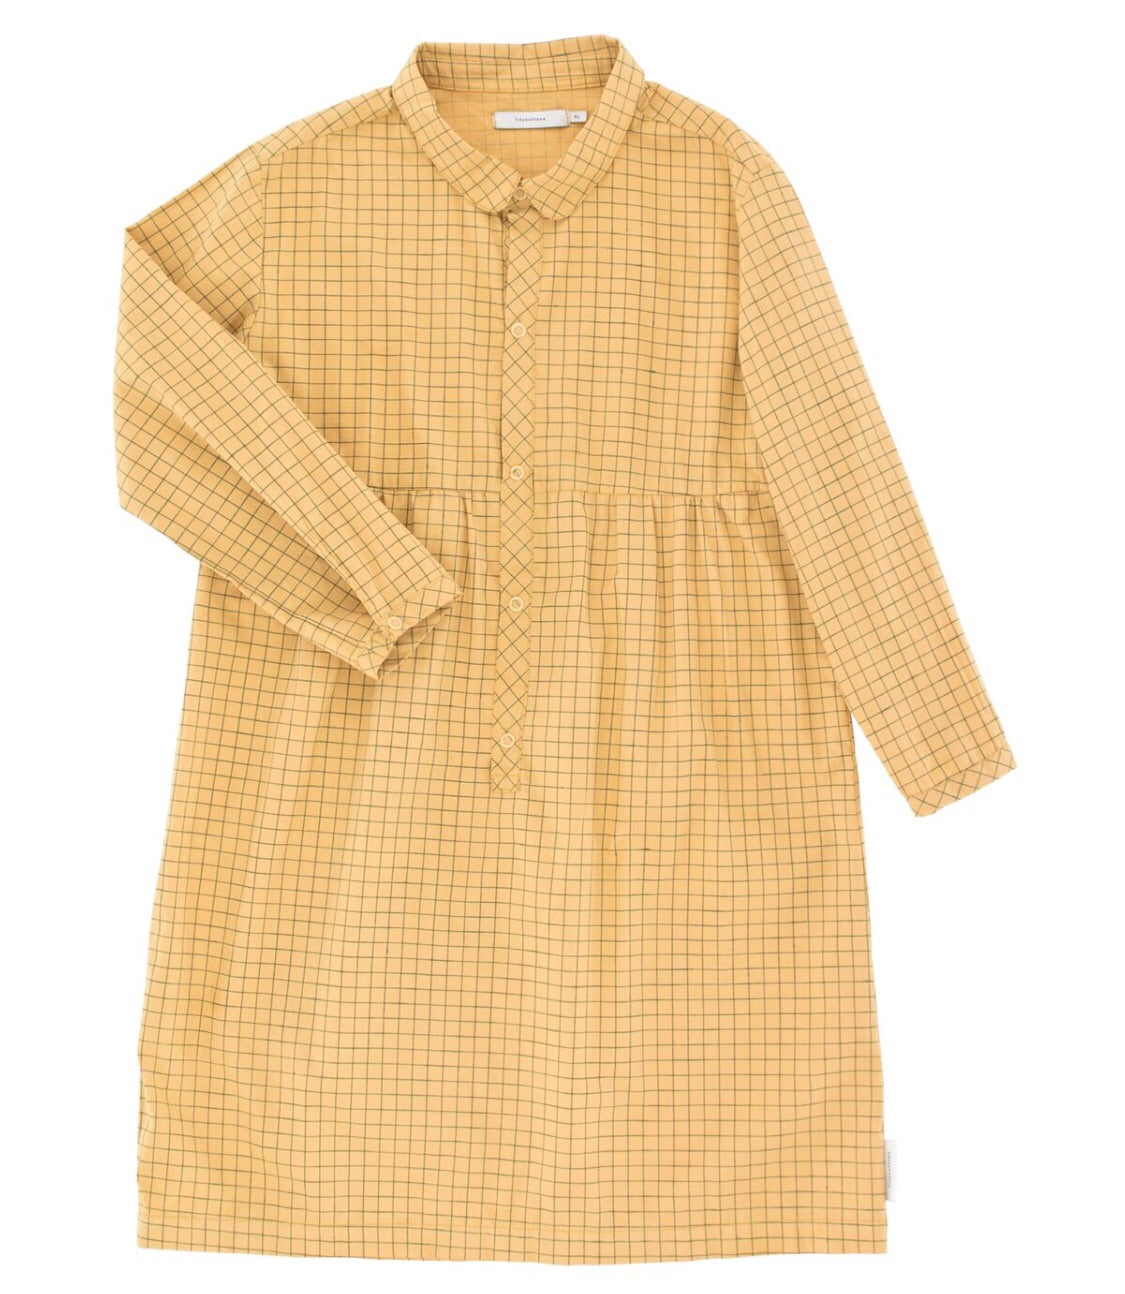 Tiny Cottons Grid Dress - Sand/Dark Green